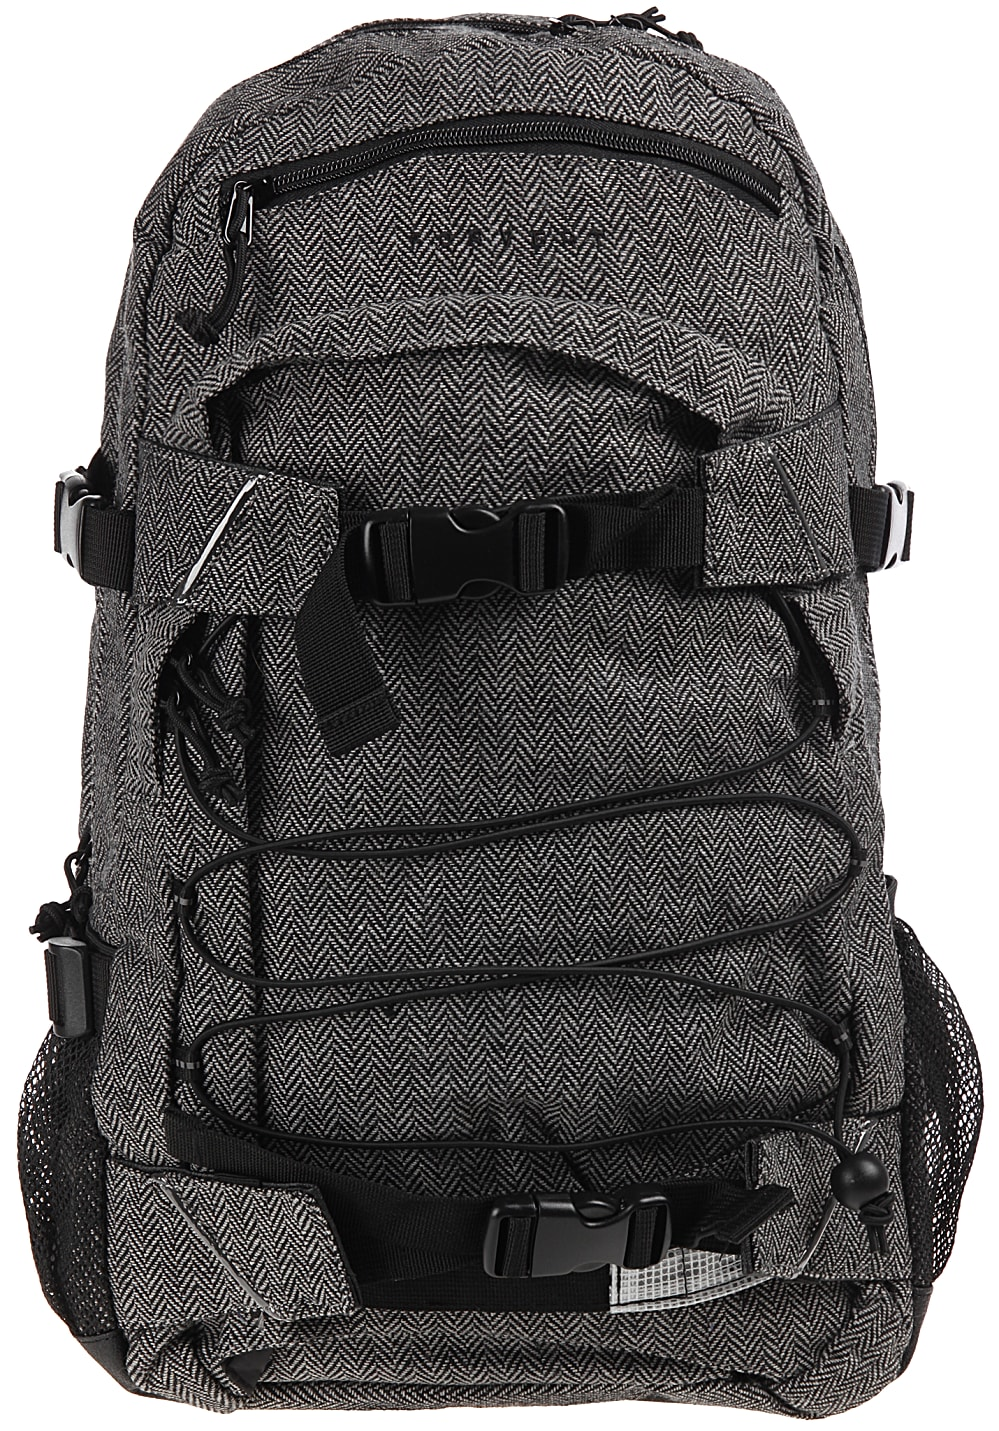 Forvert New Laptop Louis 25L Laptoprucksack - Grau